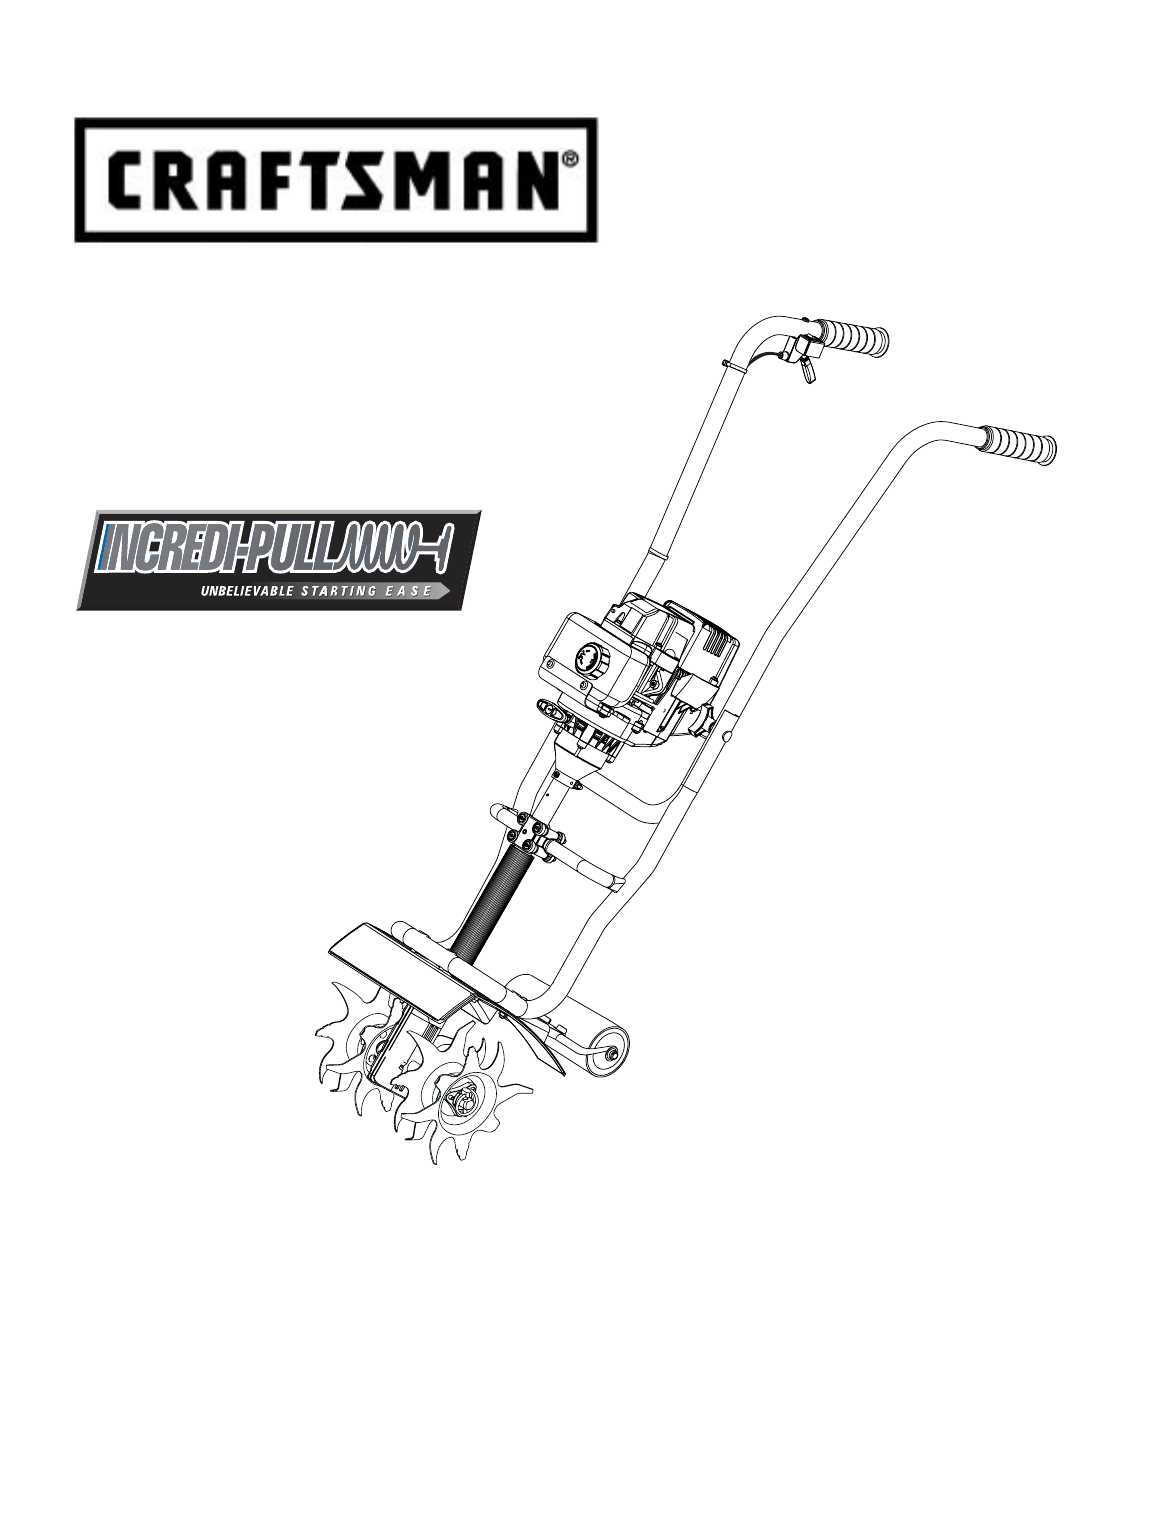 Craftsman Cultivator 316 User Guide